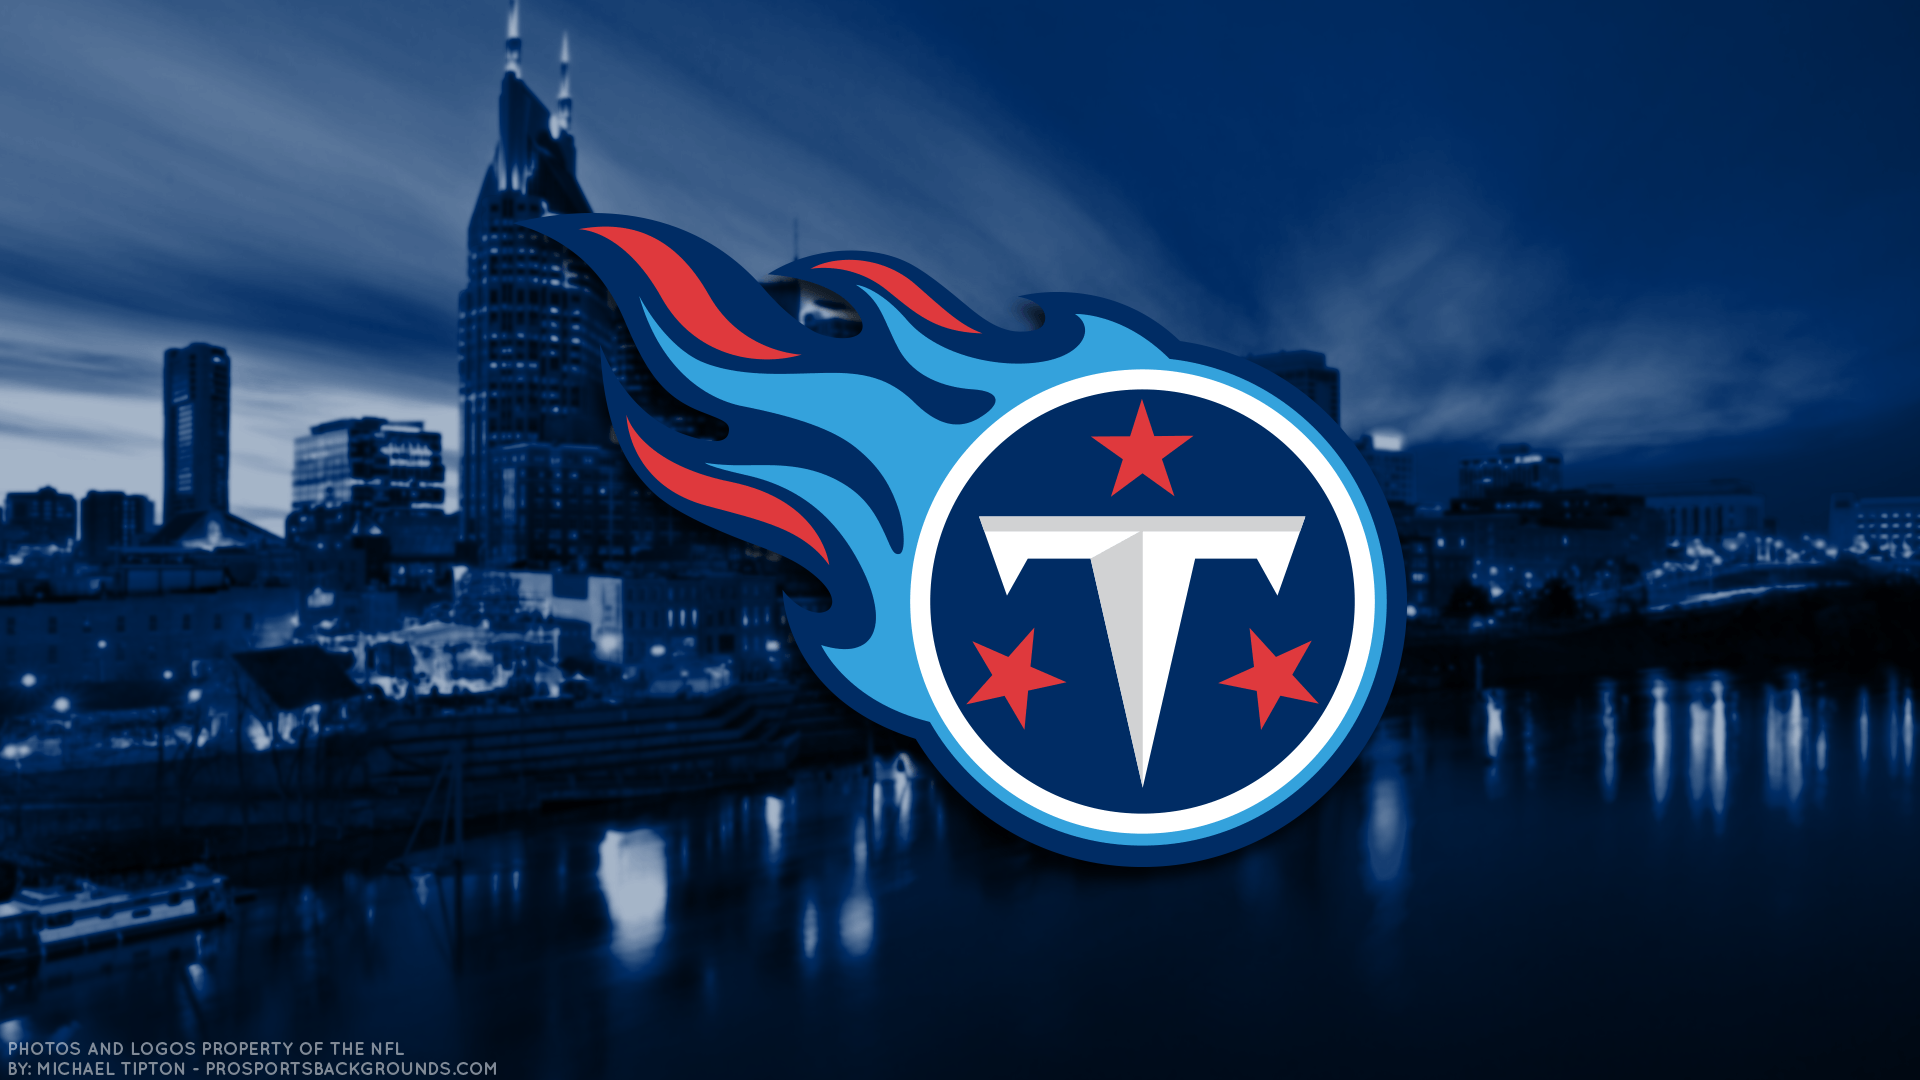 Why Choose Tennessee Titans Wallpaper?